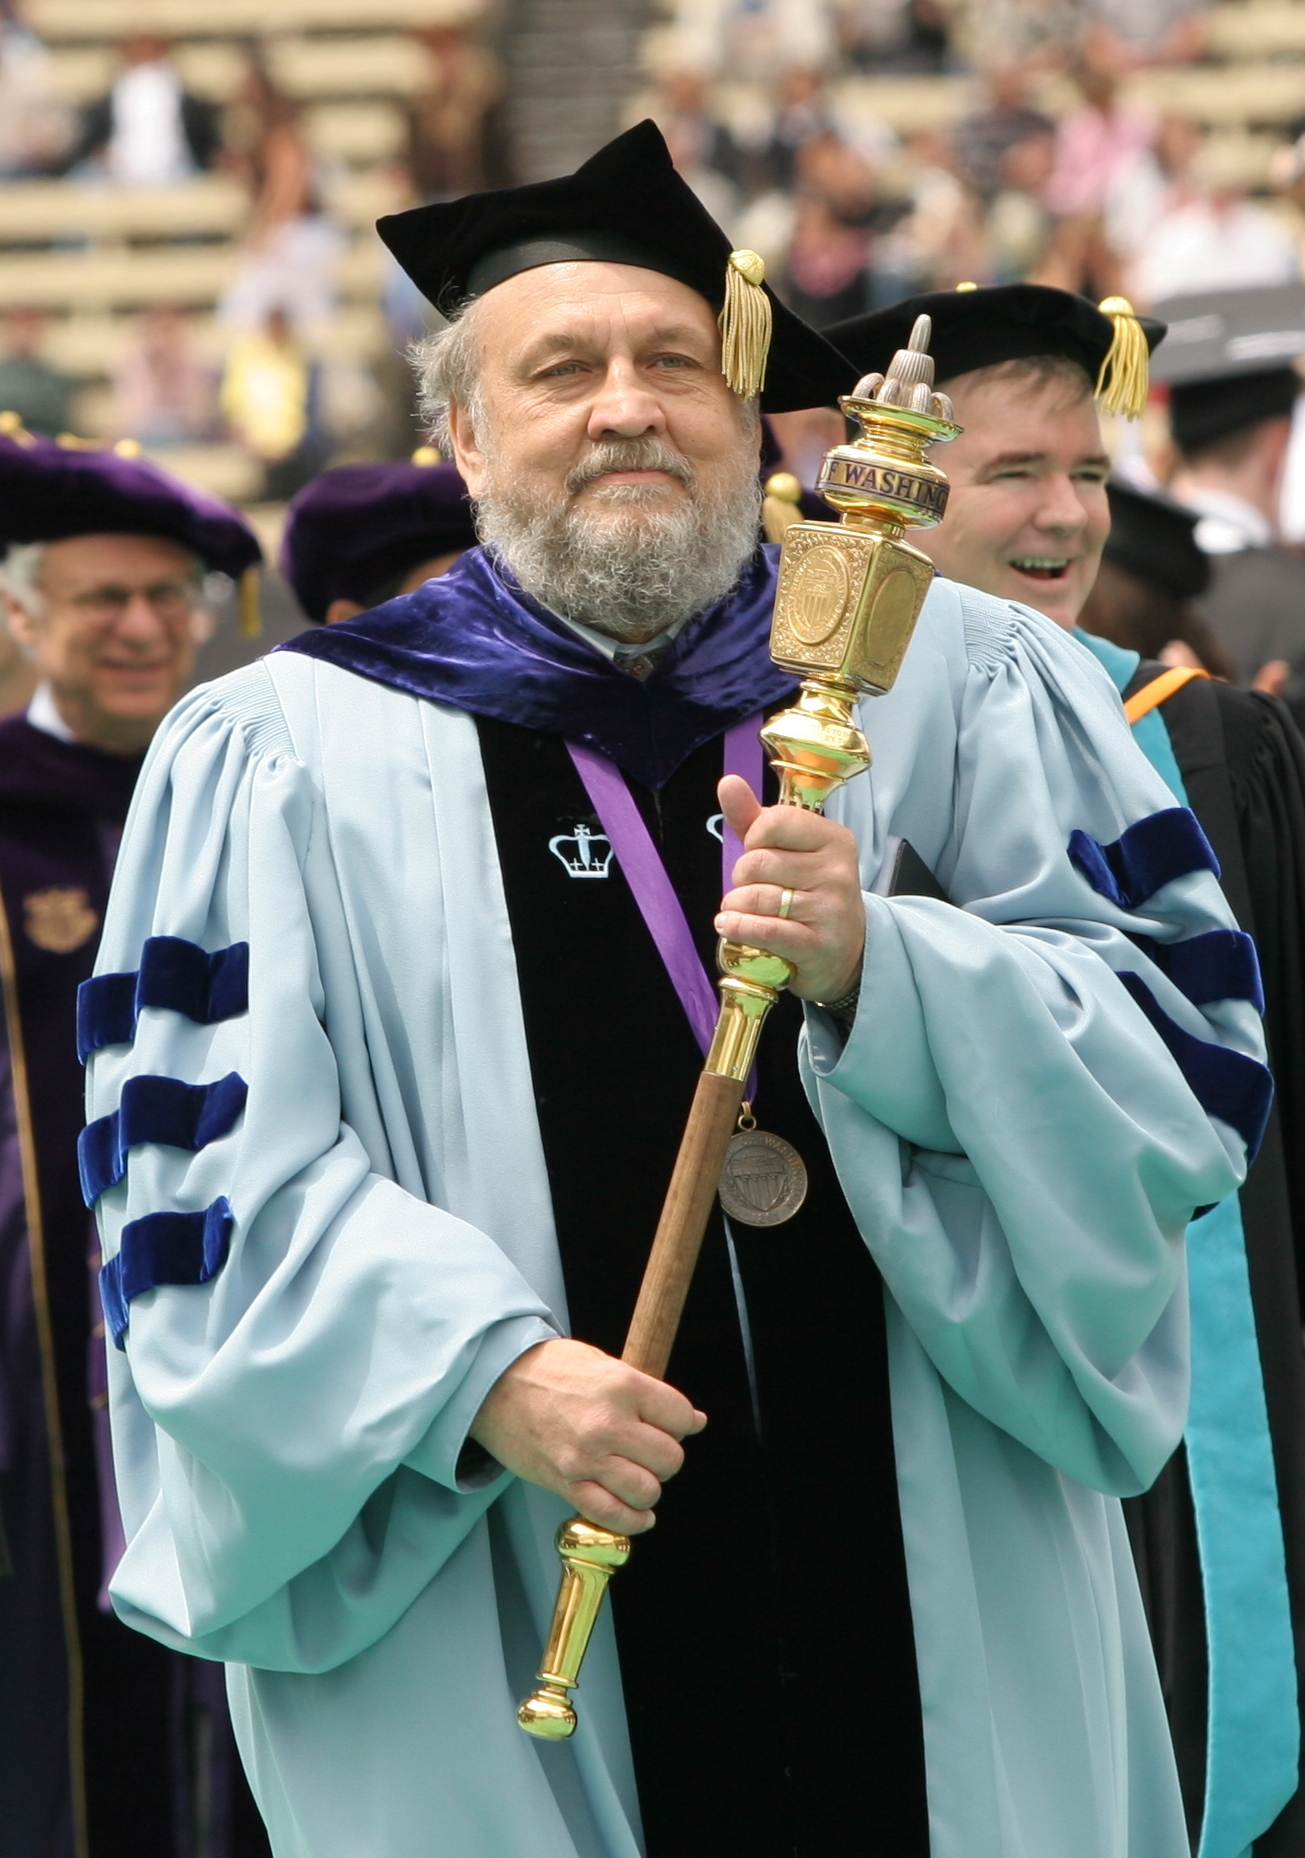 Prof. Ronald M. Moore carries university mace